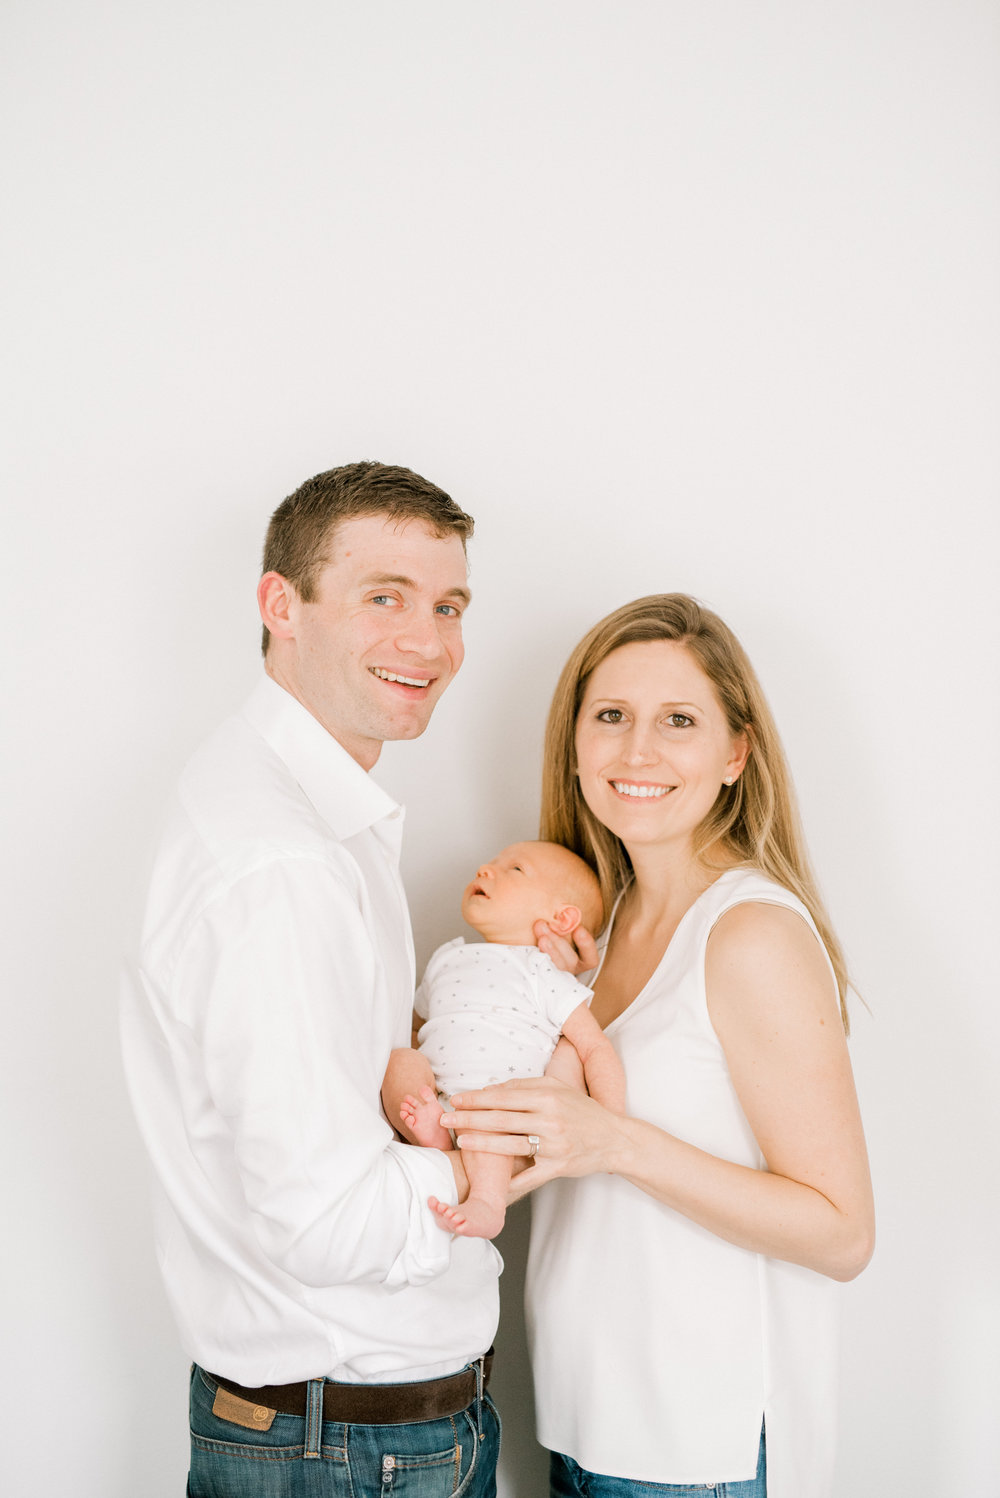 haley-richter-photography-philadelphia-newborn-family-session-035.jpg